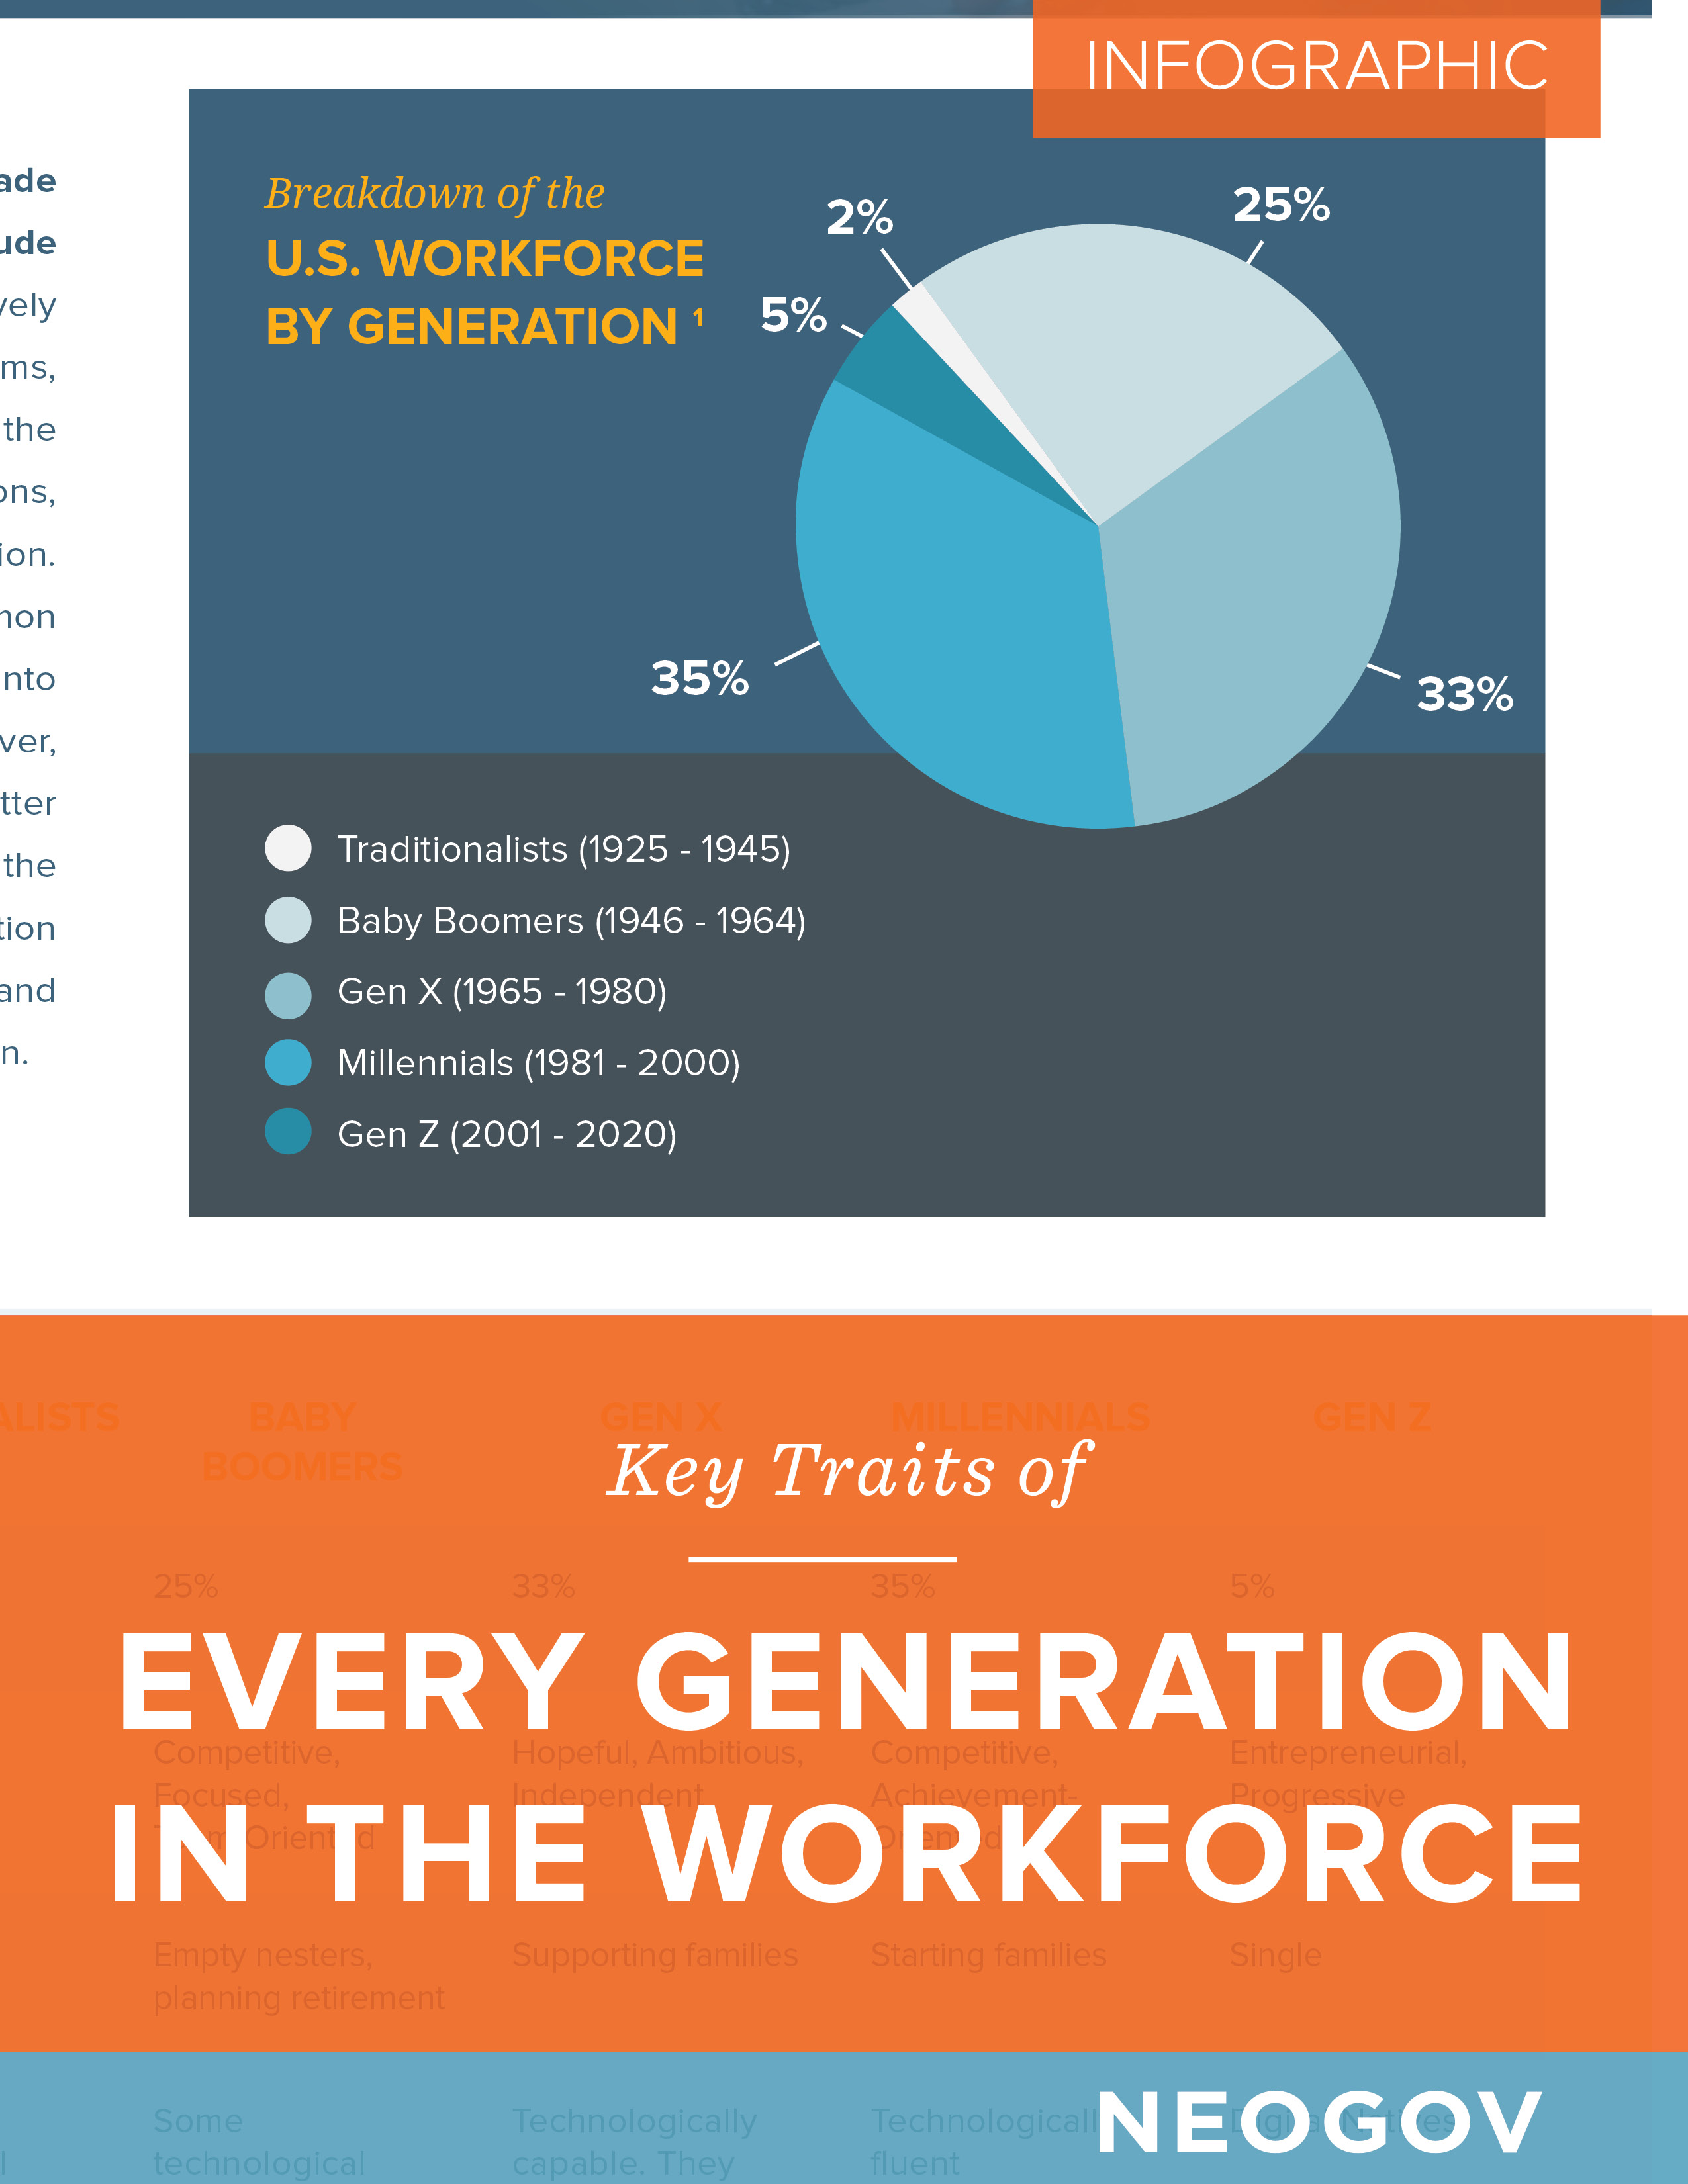 NEOGOV-Infographic-GenerationsInTheWorkforce-thumbnail